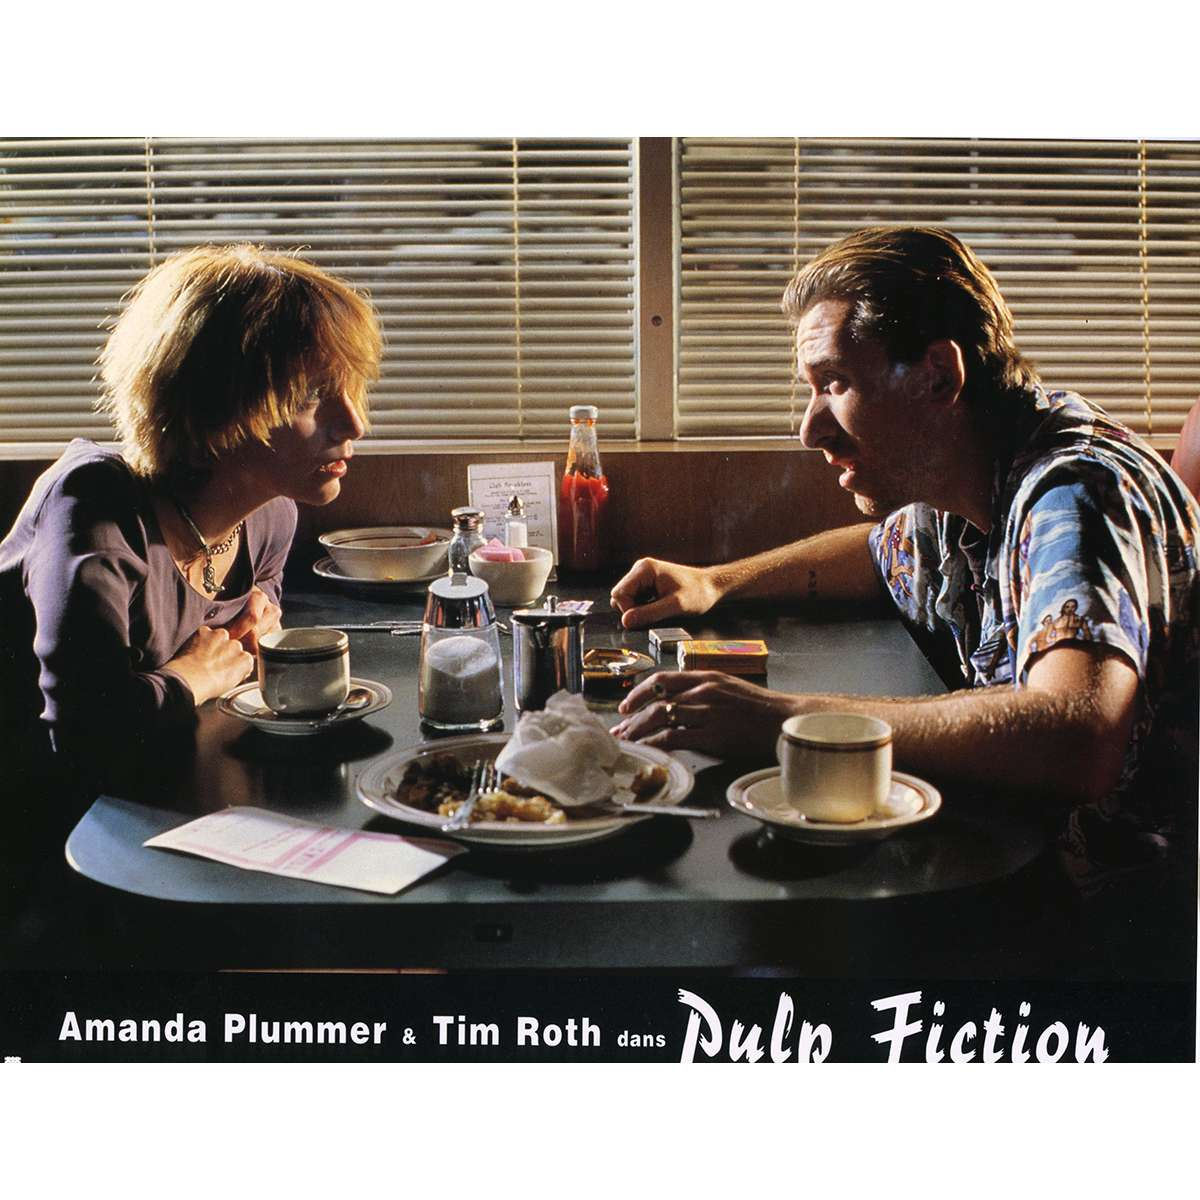 a review of quentin tarantino directed film pulp fiction Pulp fiction movie review & film summary (1994) | roger ebert http directed by quentin tarantino, action, crime, thriller rated r 154 minutes.